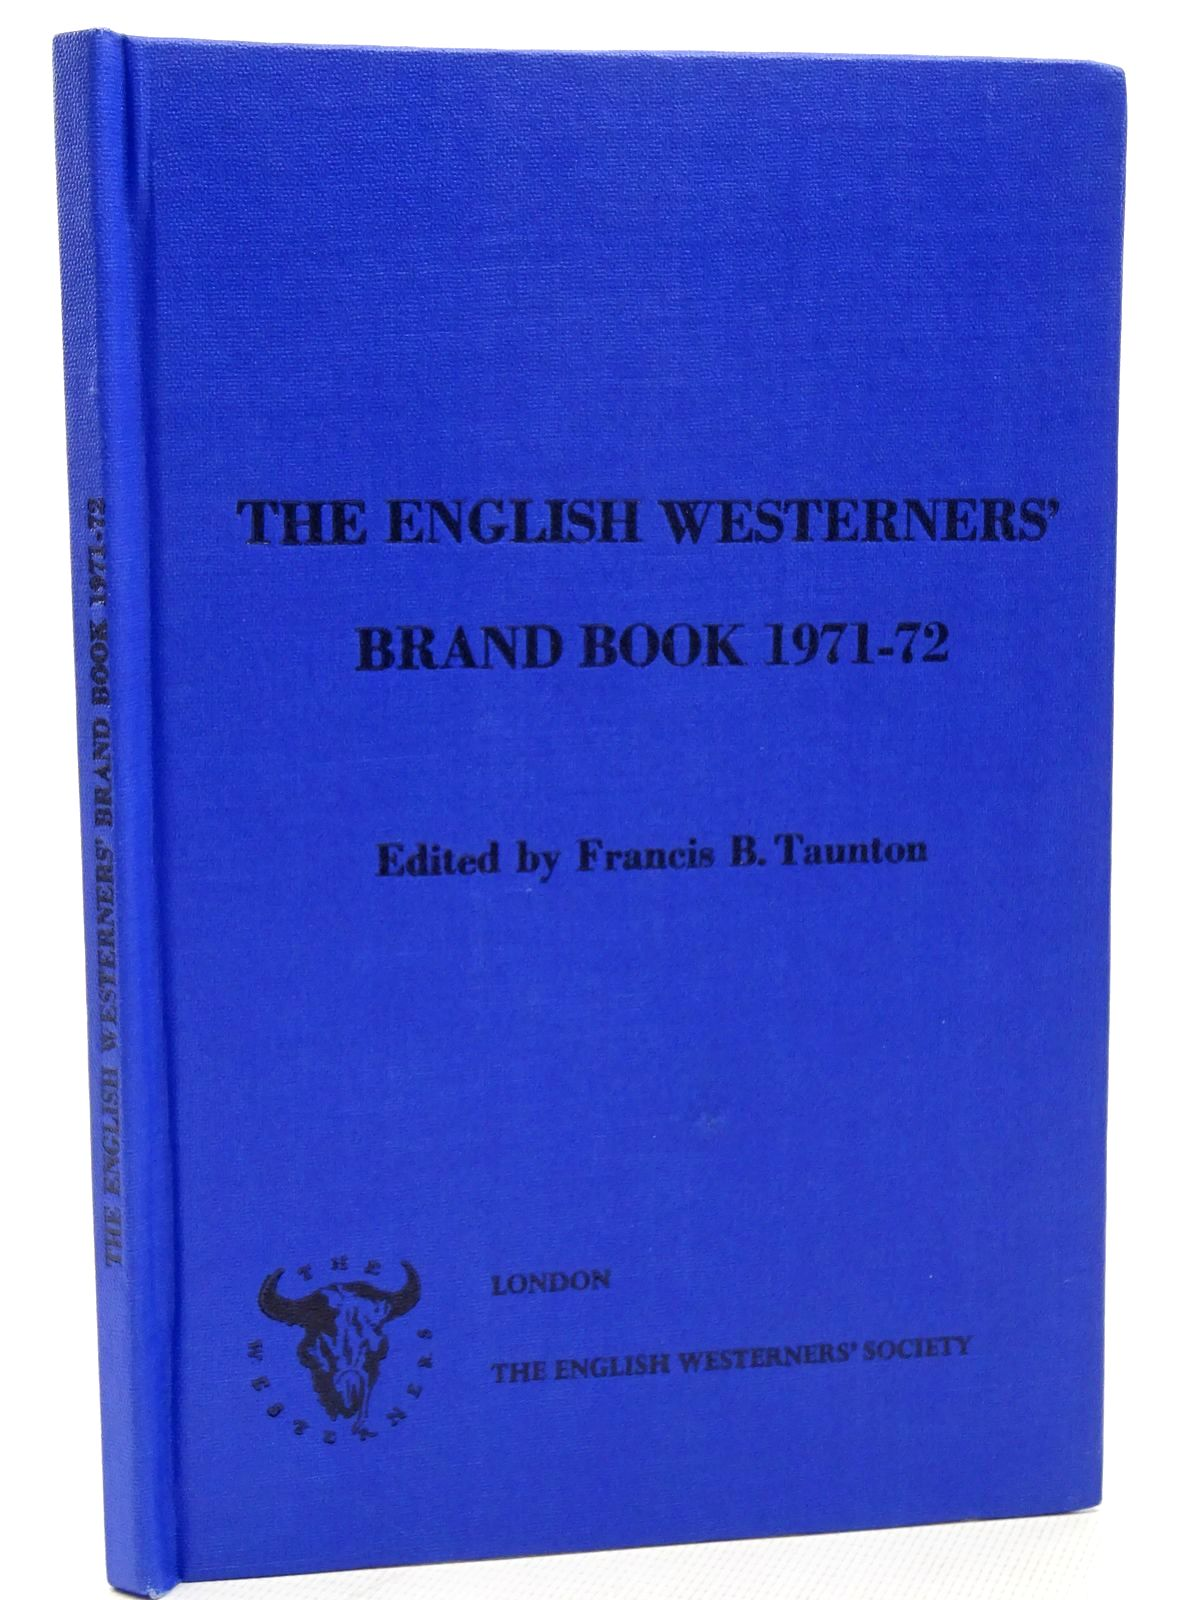 Photo of THE ENGLISH WESTERNERS' BRAND BOOK 1971-72 written by Taunton, Francis B. published by The English Westerners' Society (STOCK CODE: 2124547)  for sale by Stella & Rose's Books